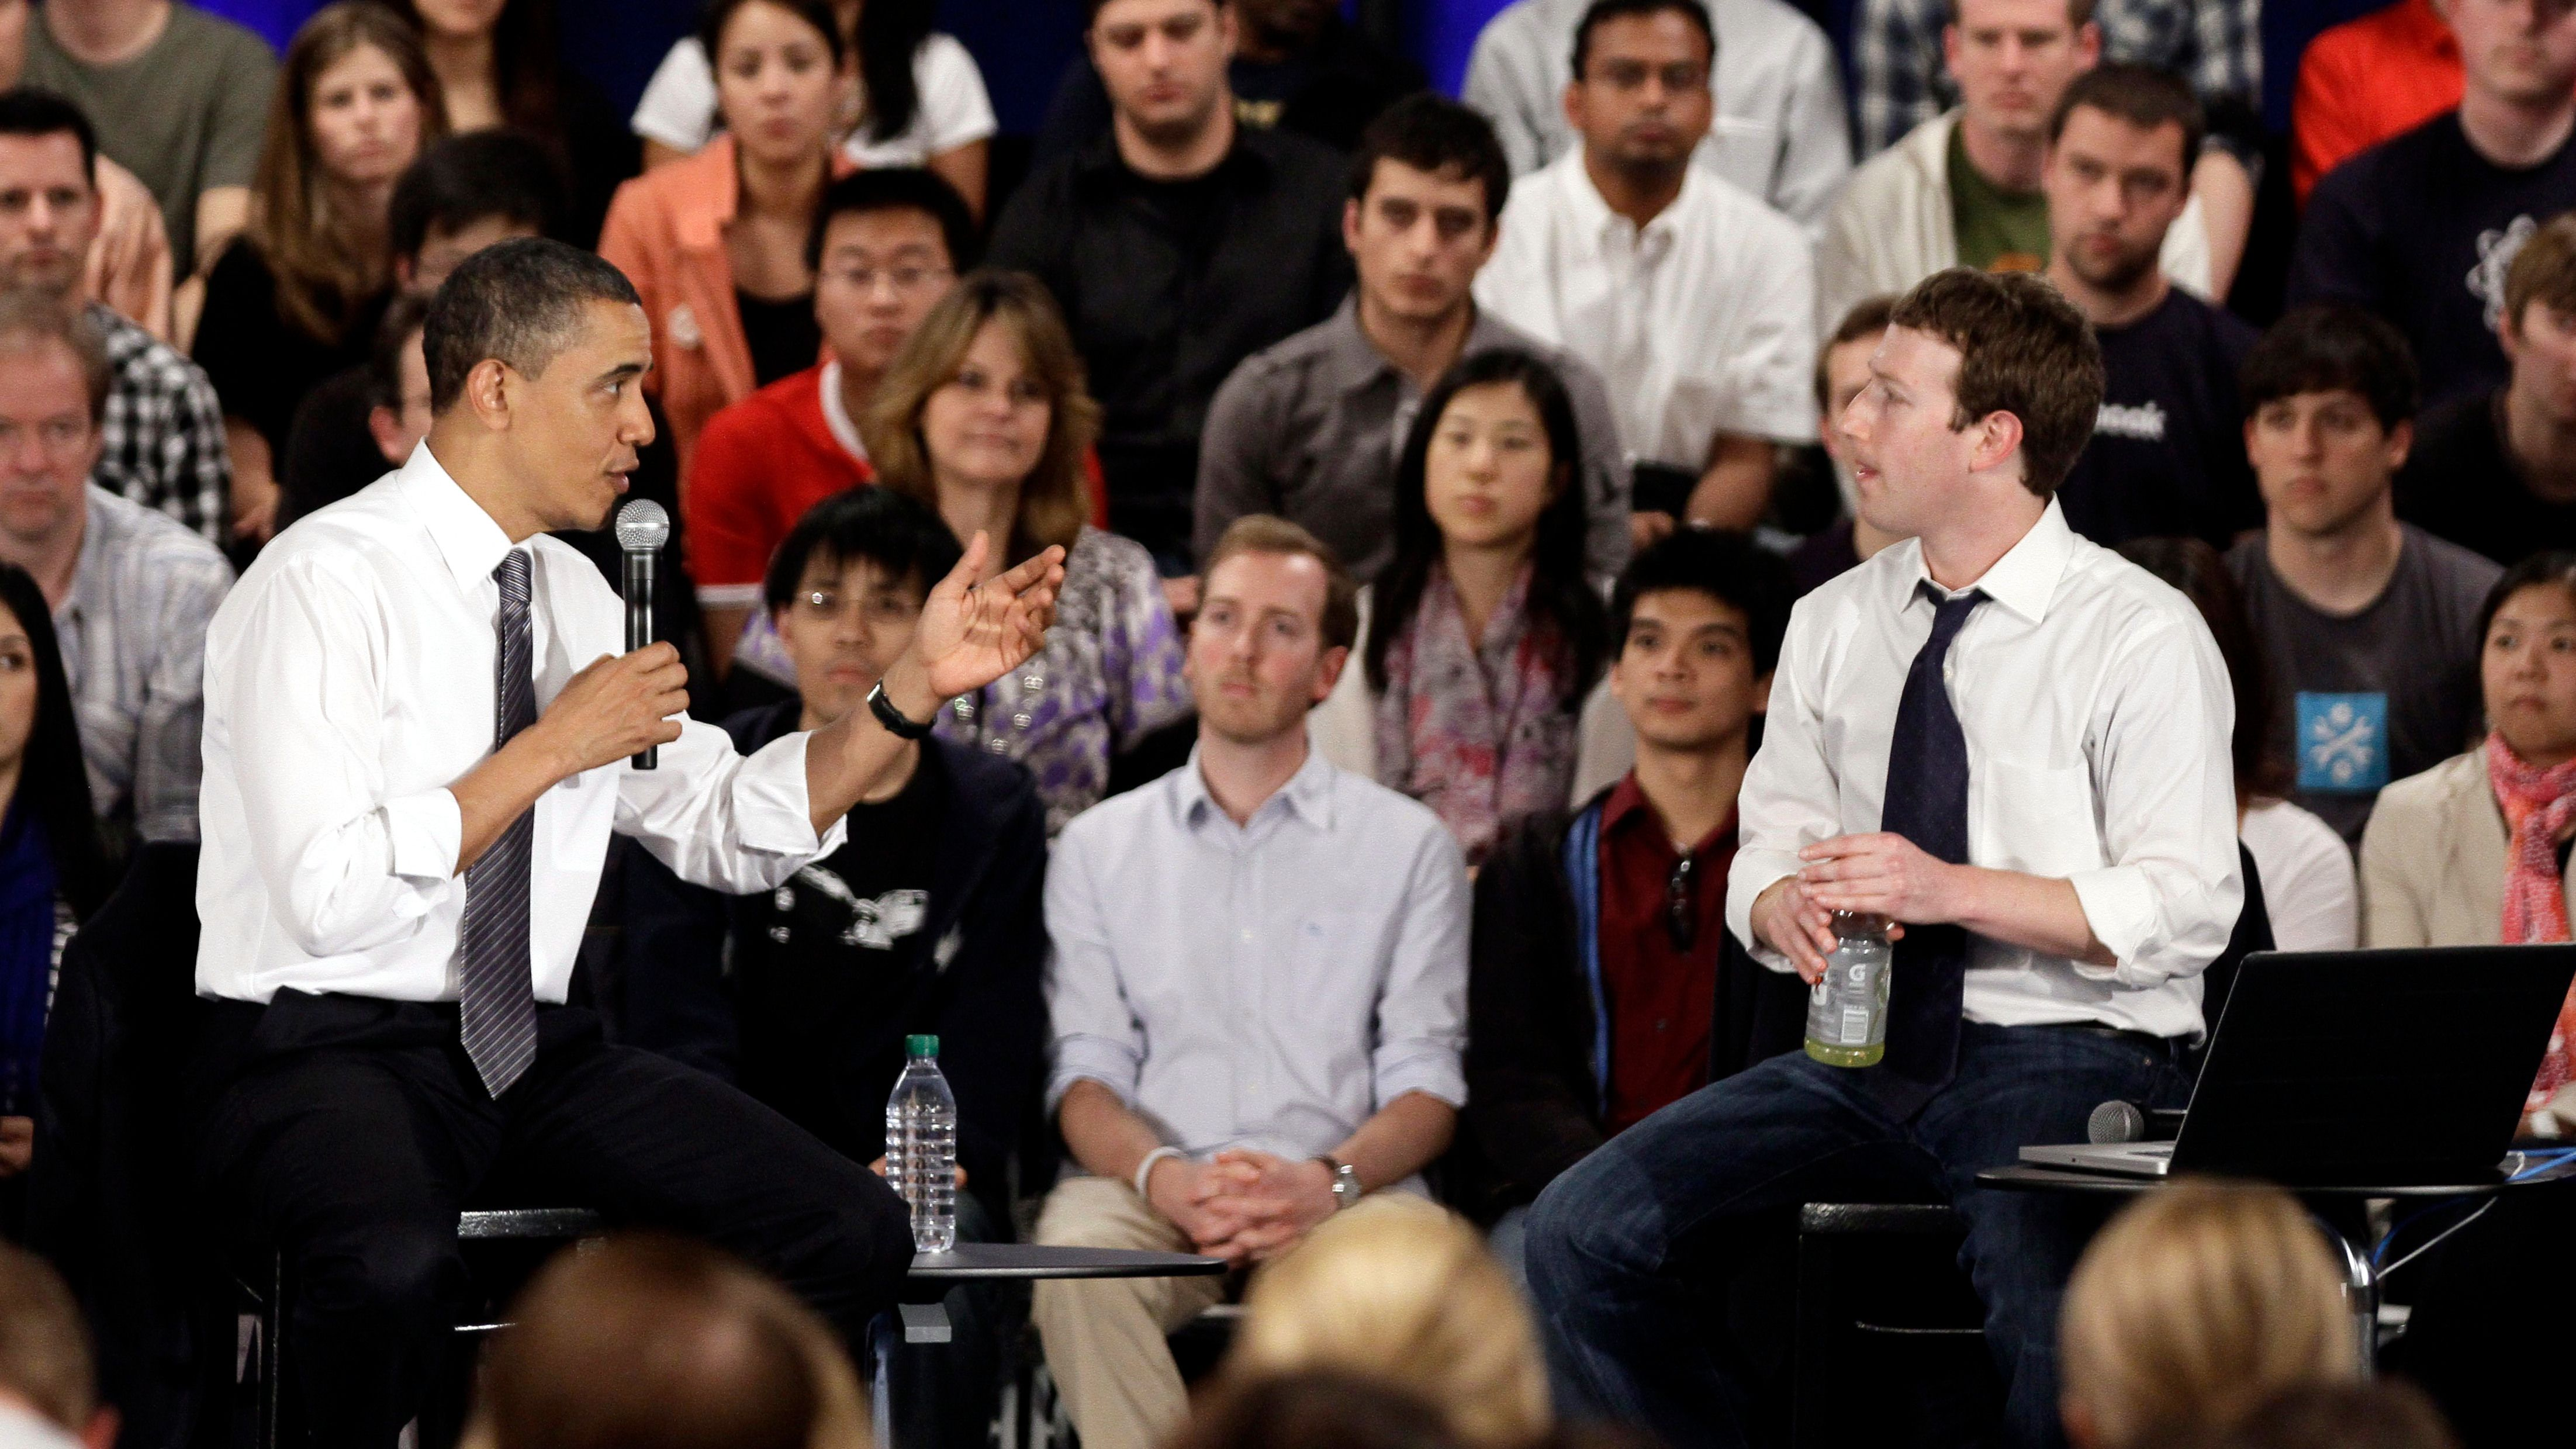 President Barack Obama, at left, and Facebook CEO Mark Zuckerberg during a town hall meeting at Facebook headquarters in Palo Alto, Calif., Wednesday, April 20, 2011.